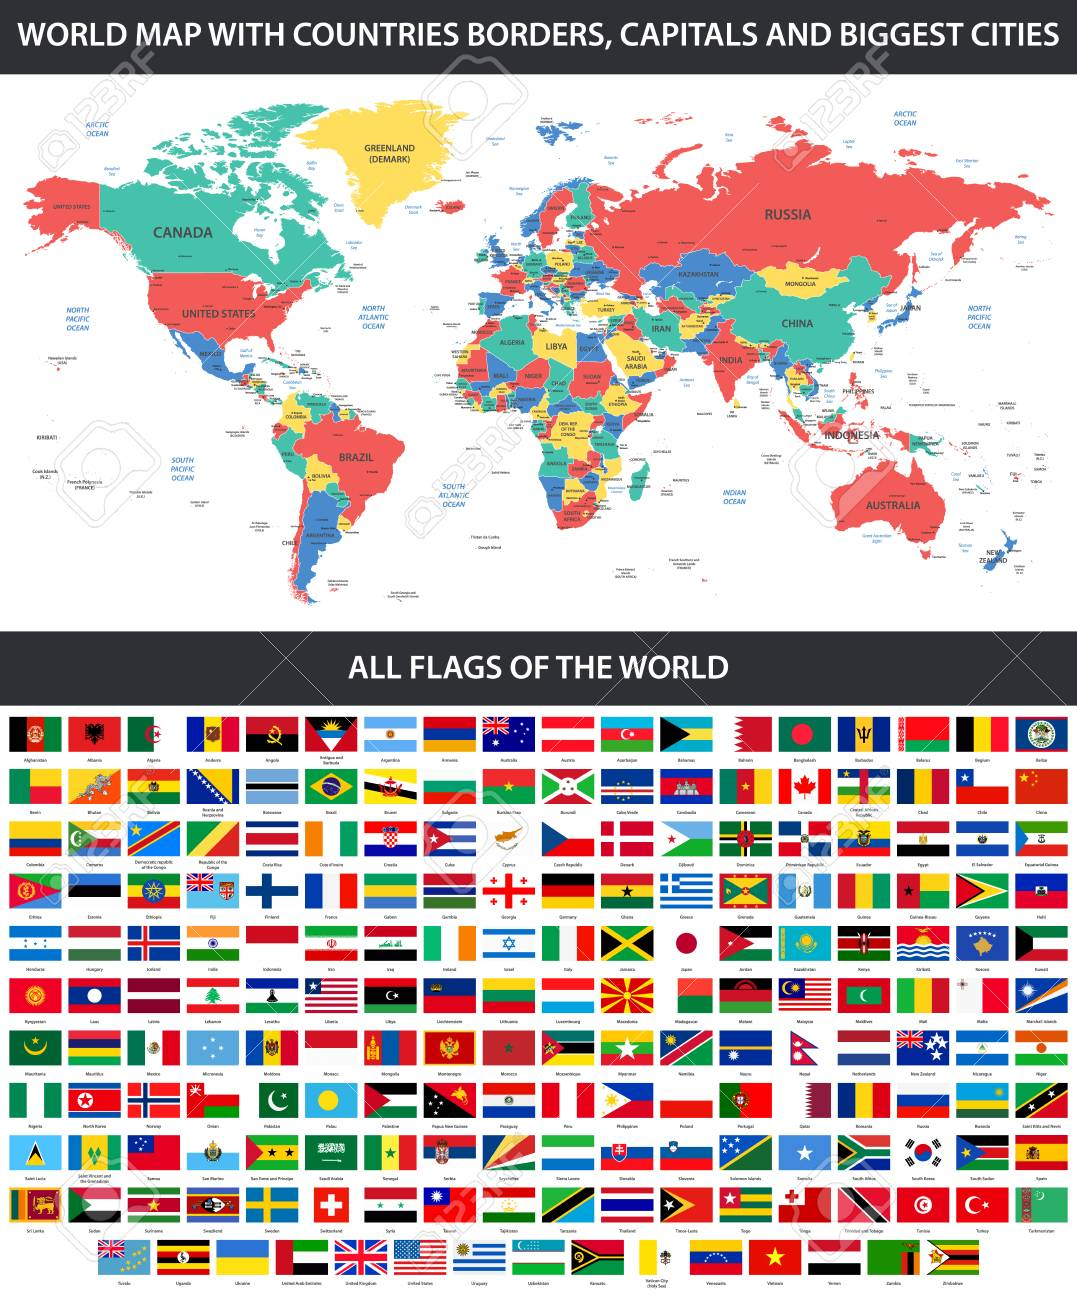 Large Detailed World Map.All Flags Of The World In Alphabetical Order And Detailed World